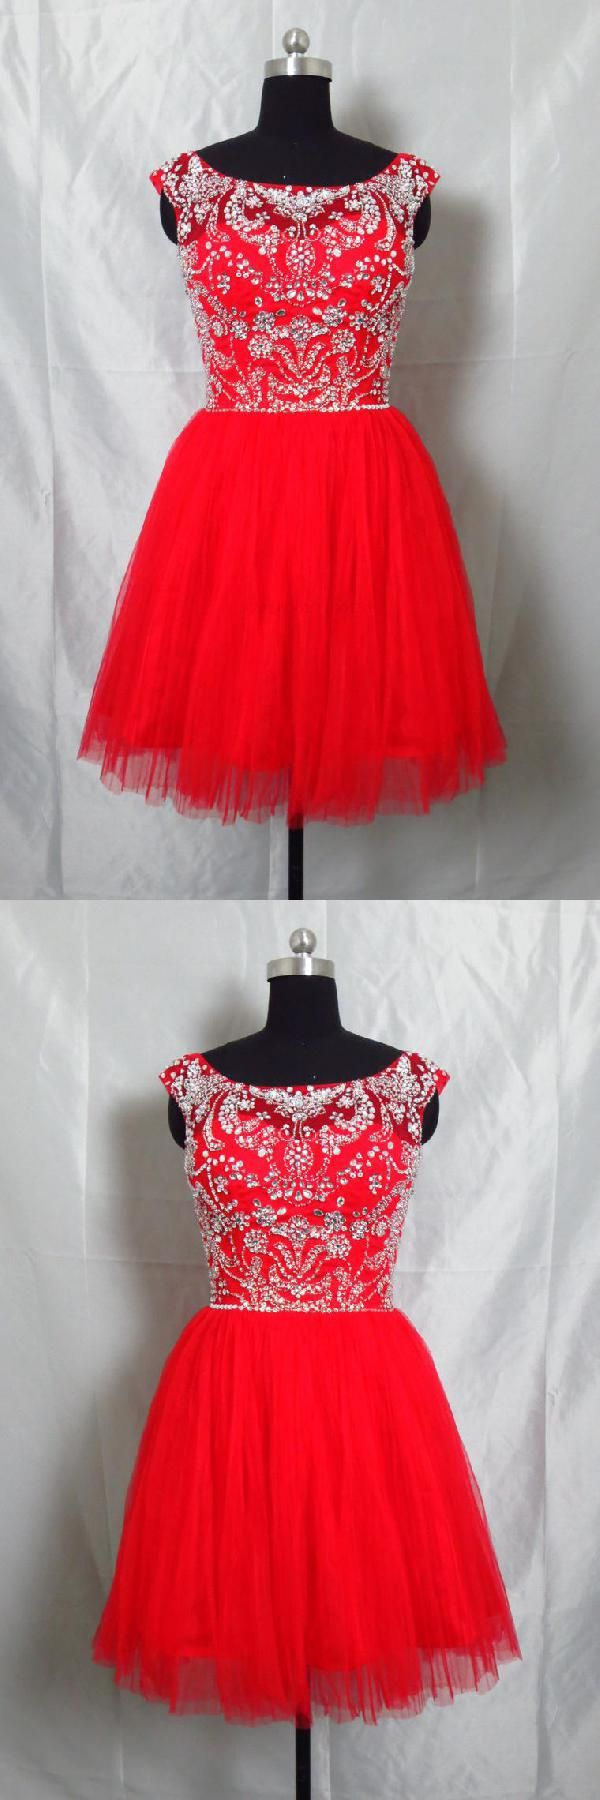 High neck short red ball gown okdr short homecoming